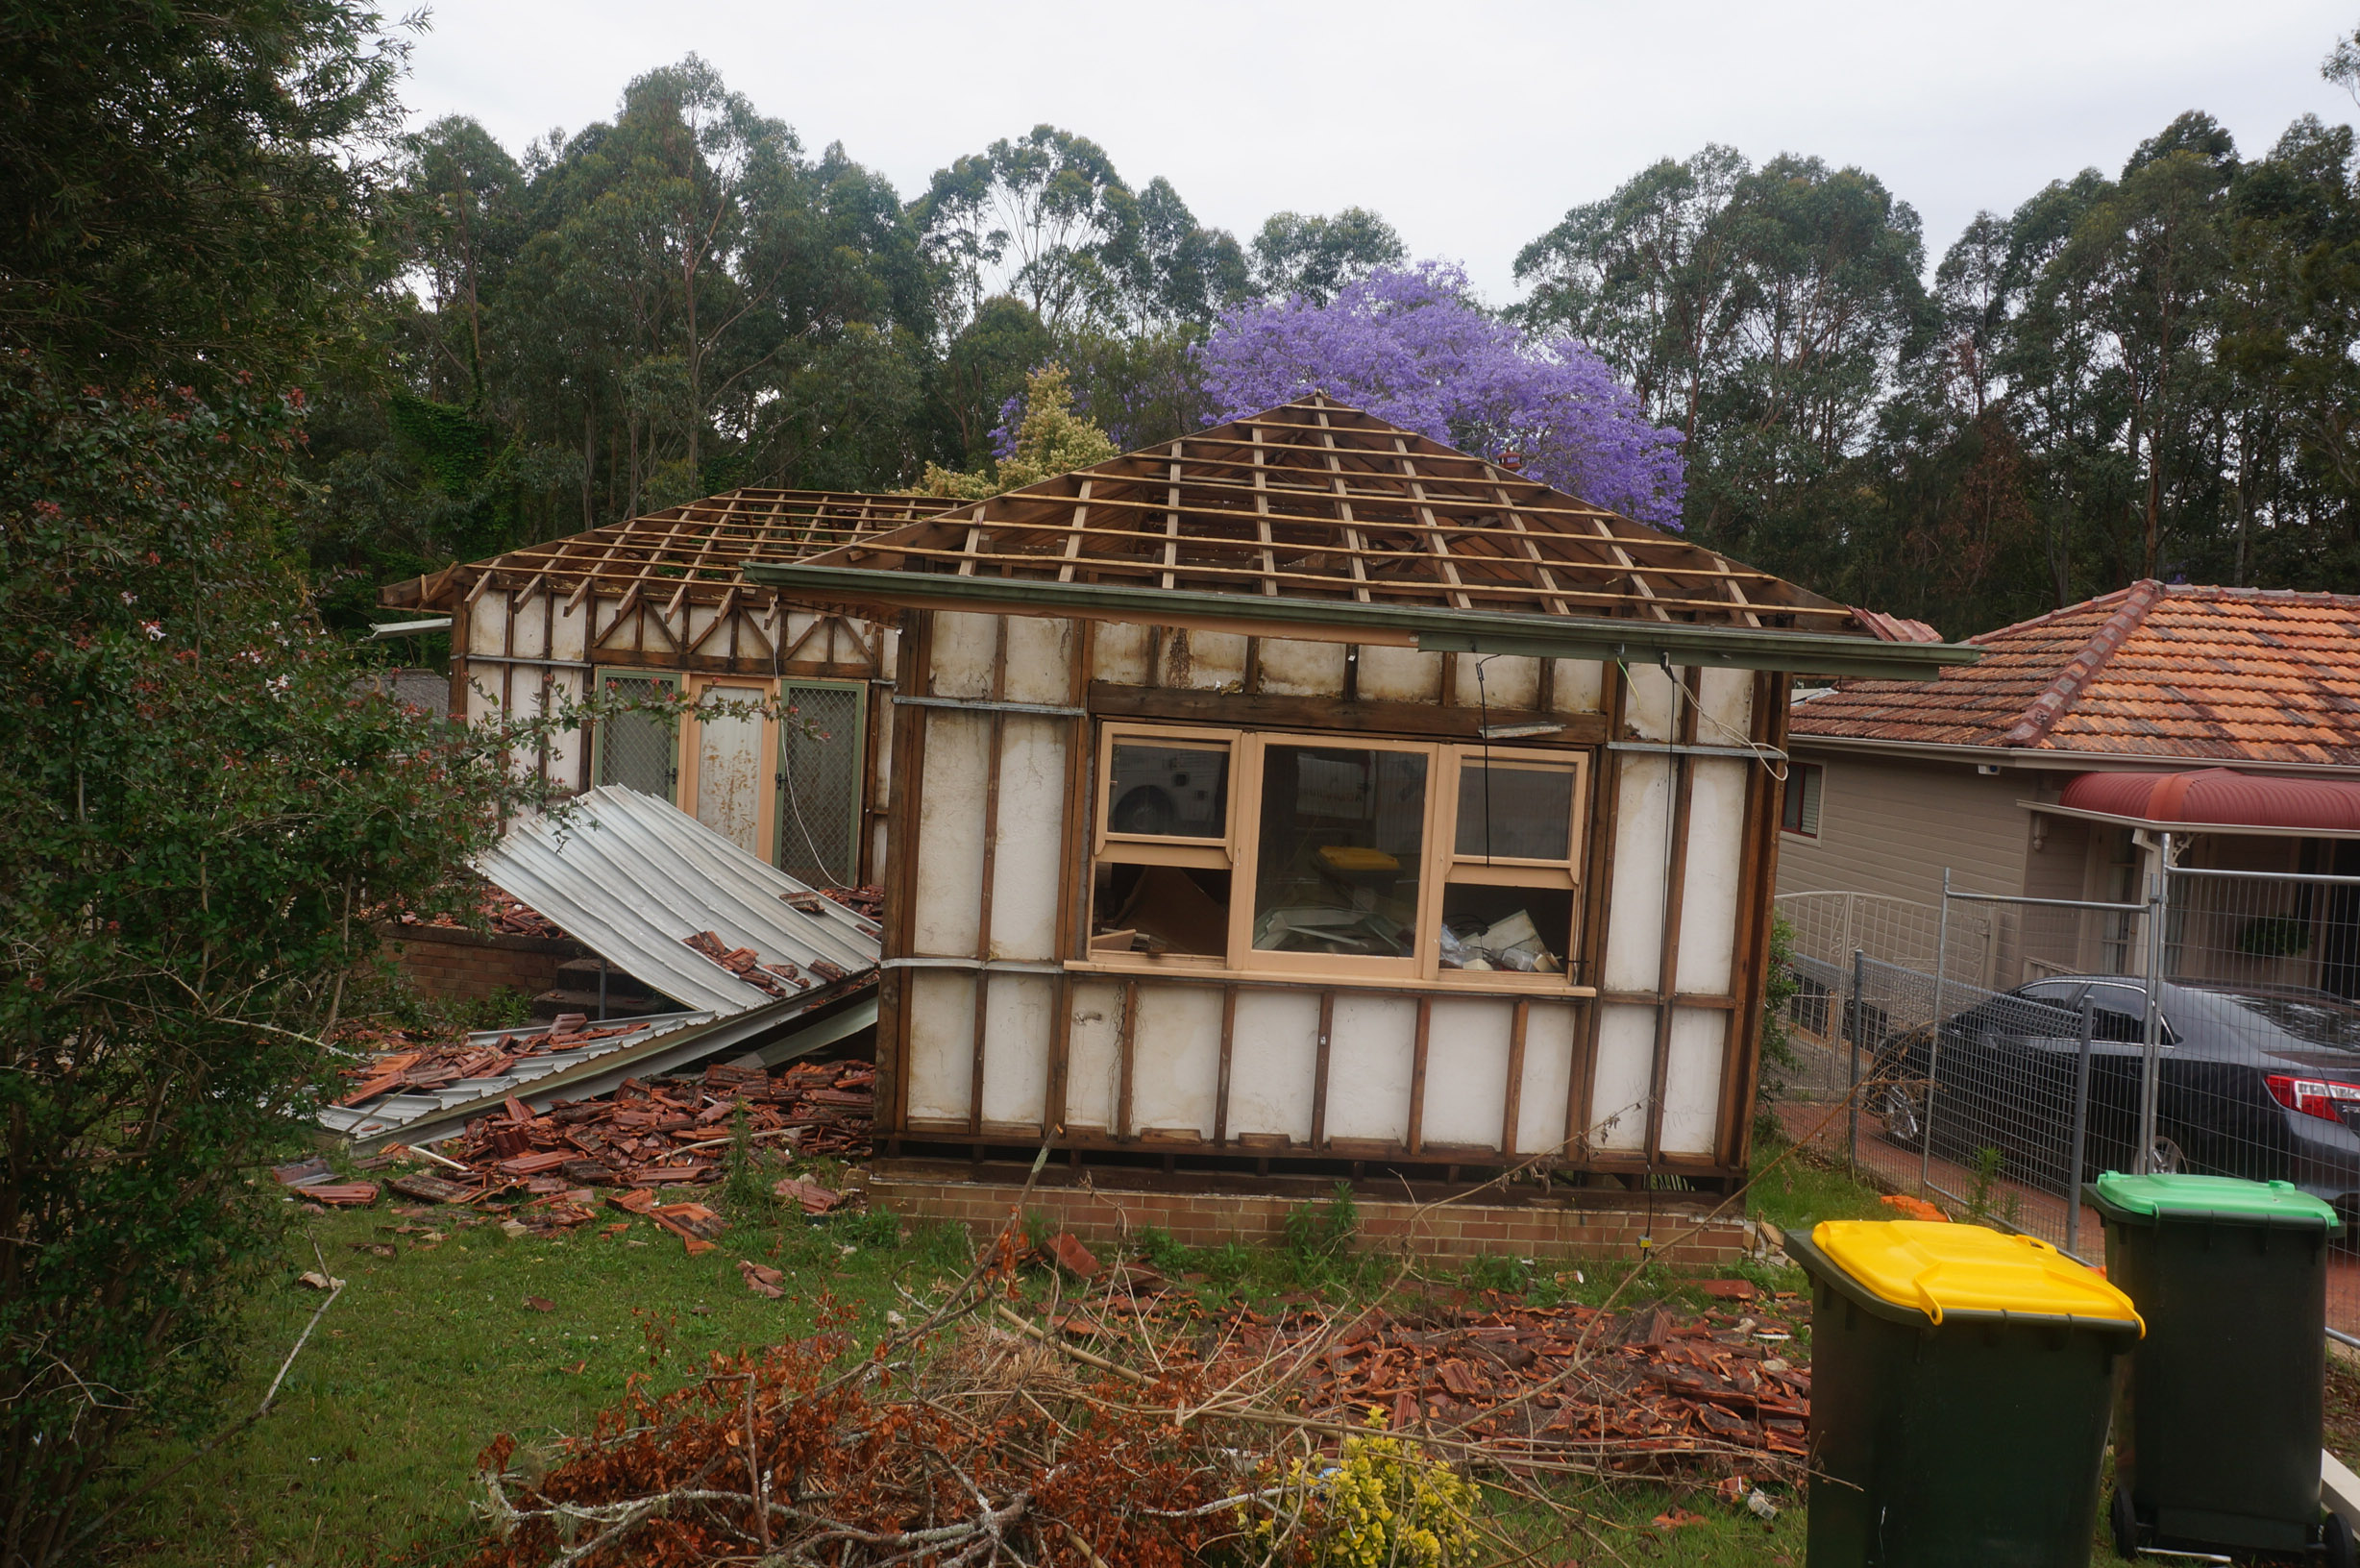 Once the asbestos had been removed, this (formerly) asbestos clad fibro home took around 20 minutes to demolish.